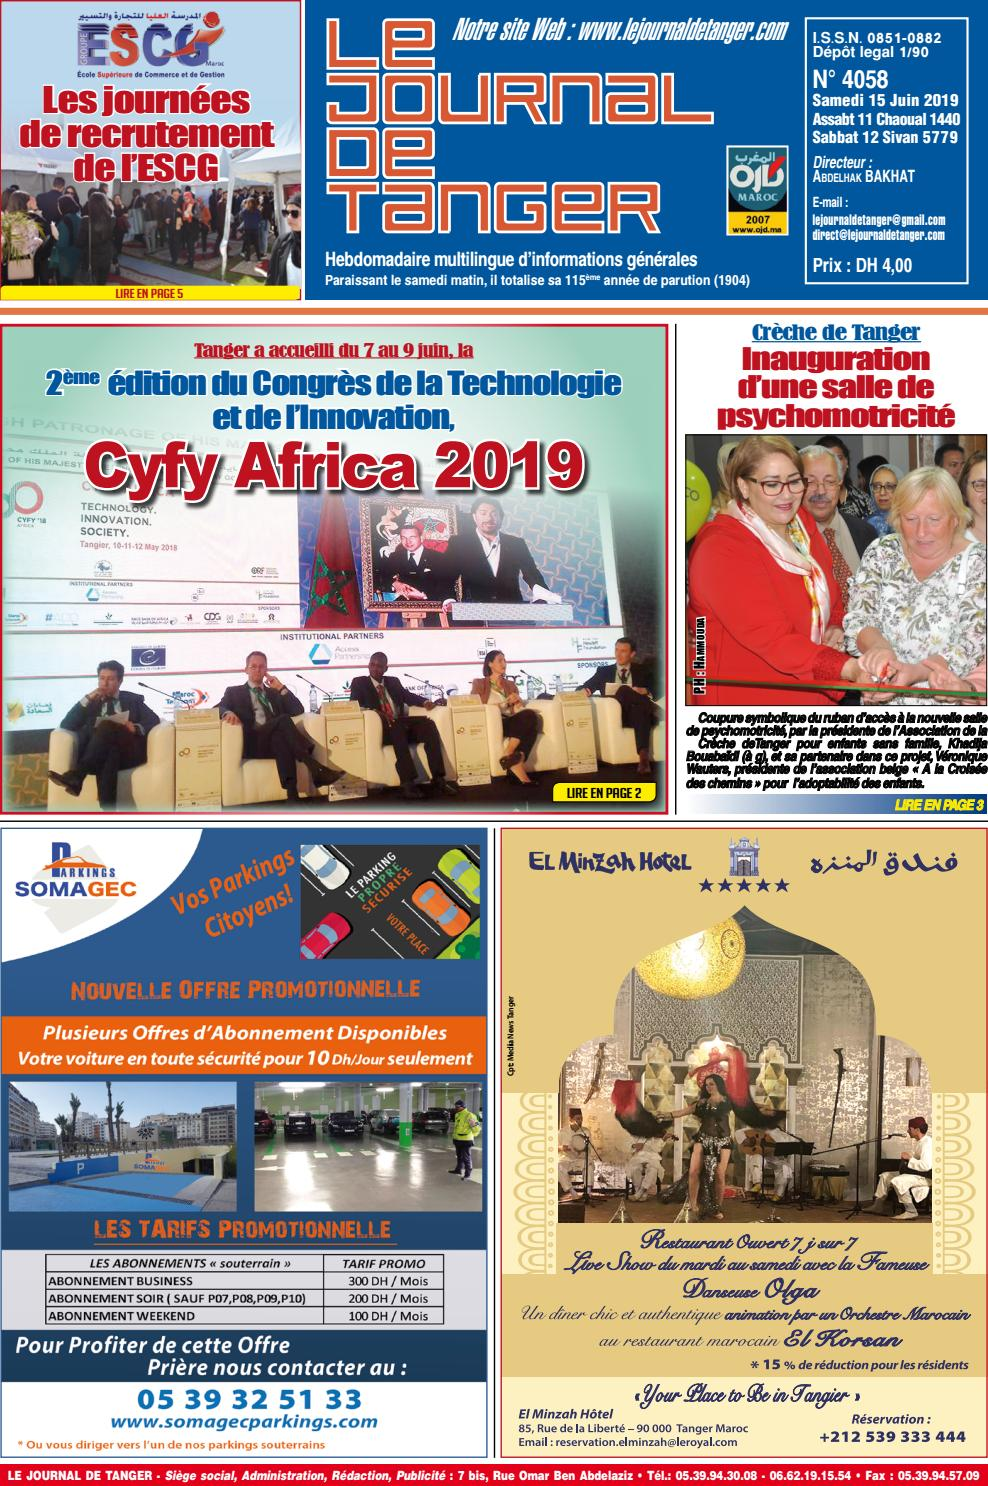 Le Journal De Tanger 15 Juin 2019 By Le Journal De Tanger